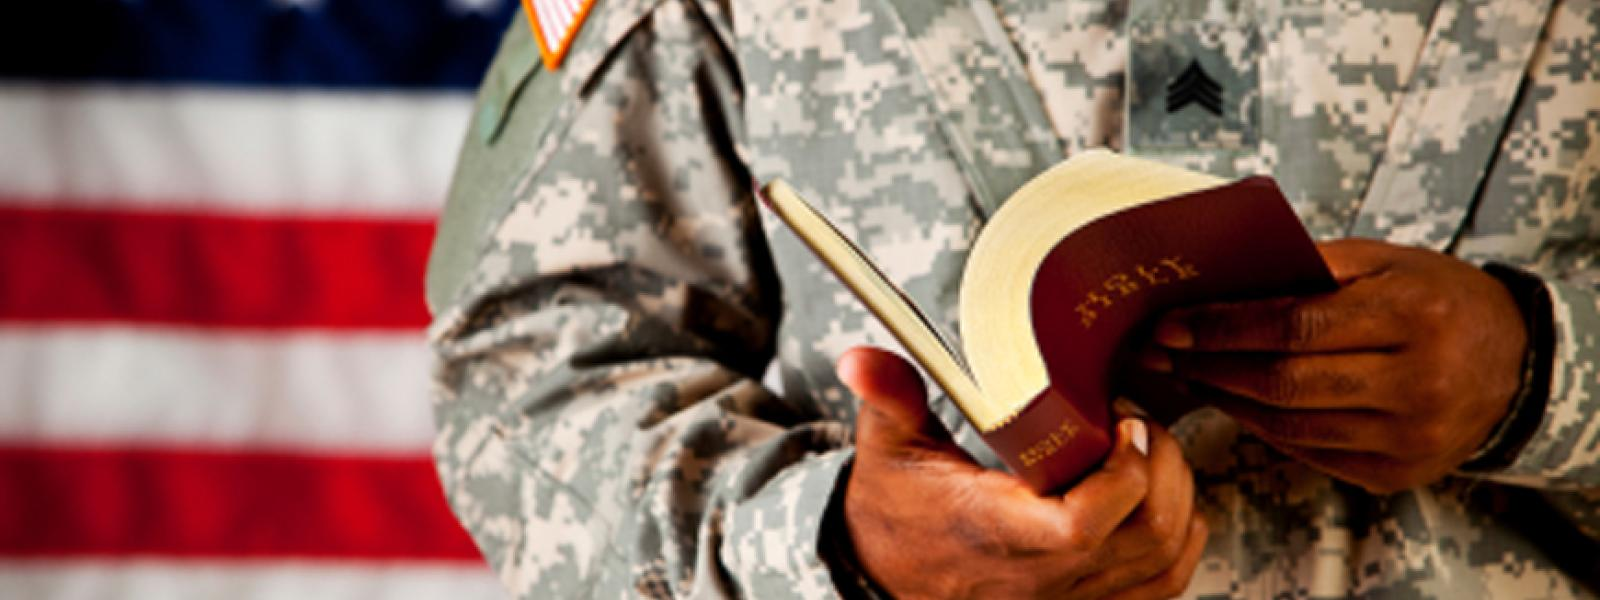 CIU is ranked among the most military-friendly colleges and universities.